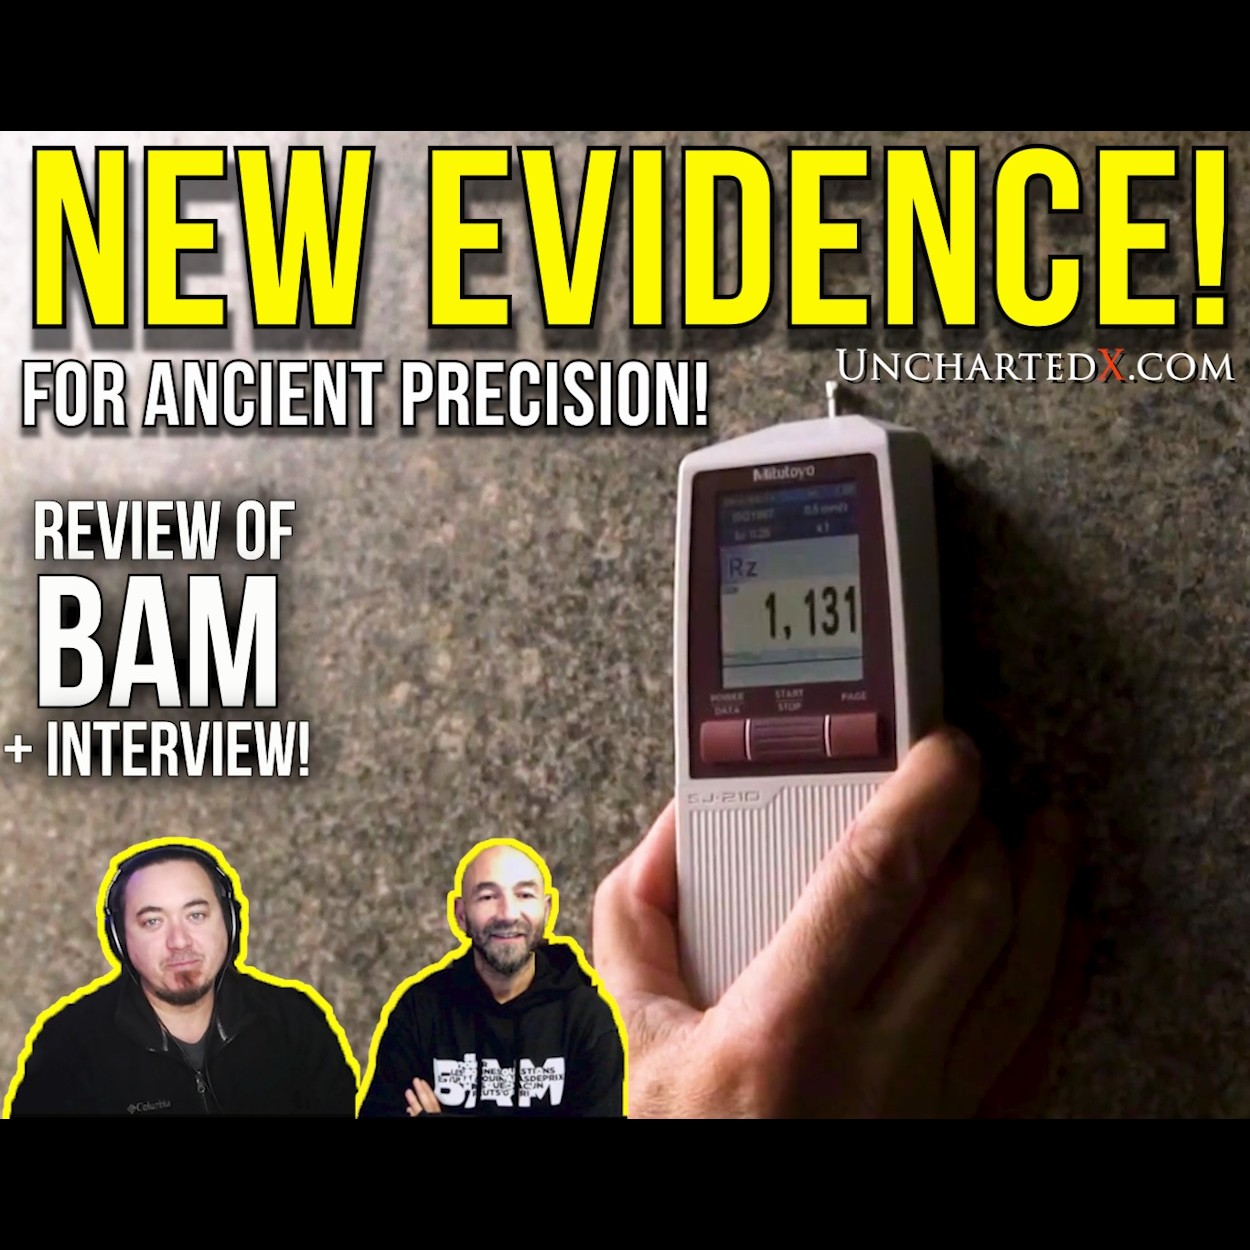 009:Review of doocumentary BAM, and interview with Director Patrice Pouillard!